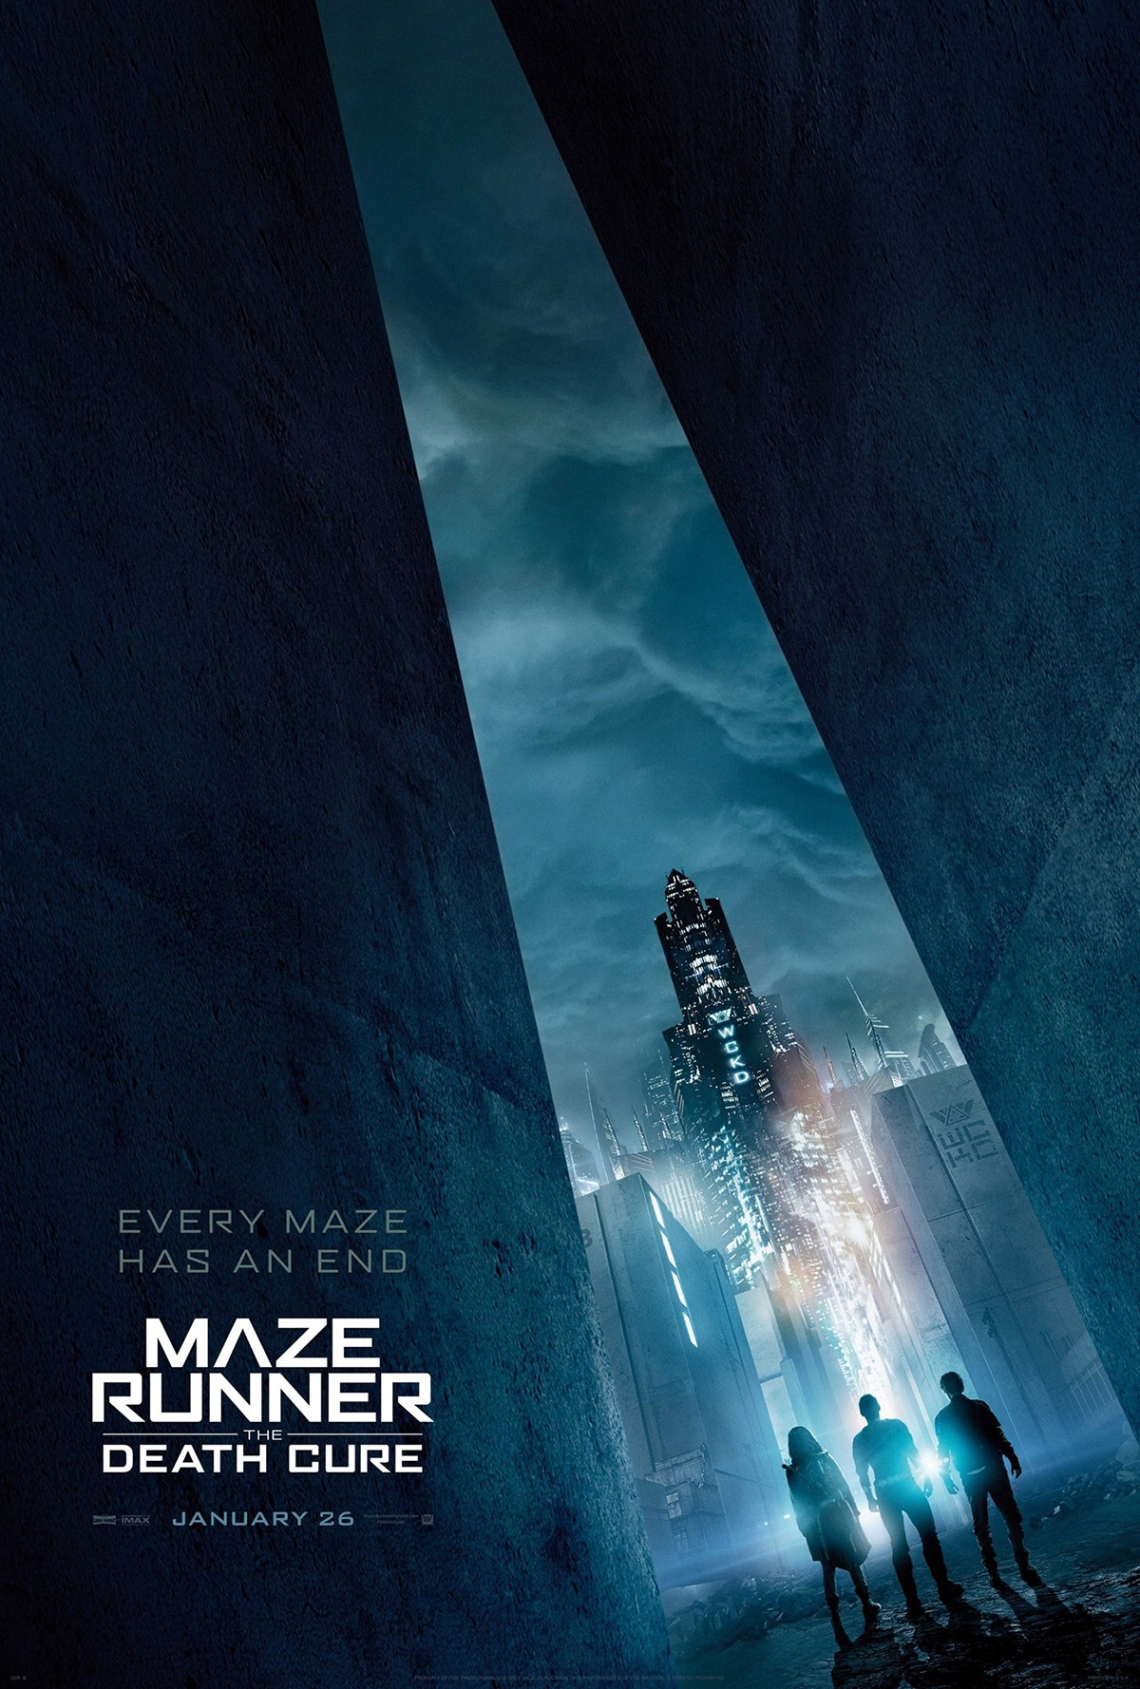 Maze-Runner-The-Death-Cure-poster-1.jpg